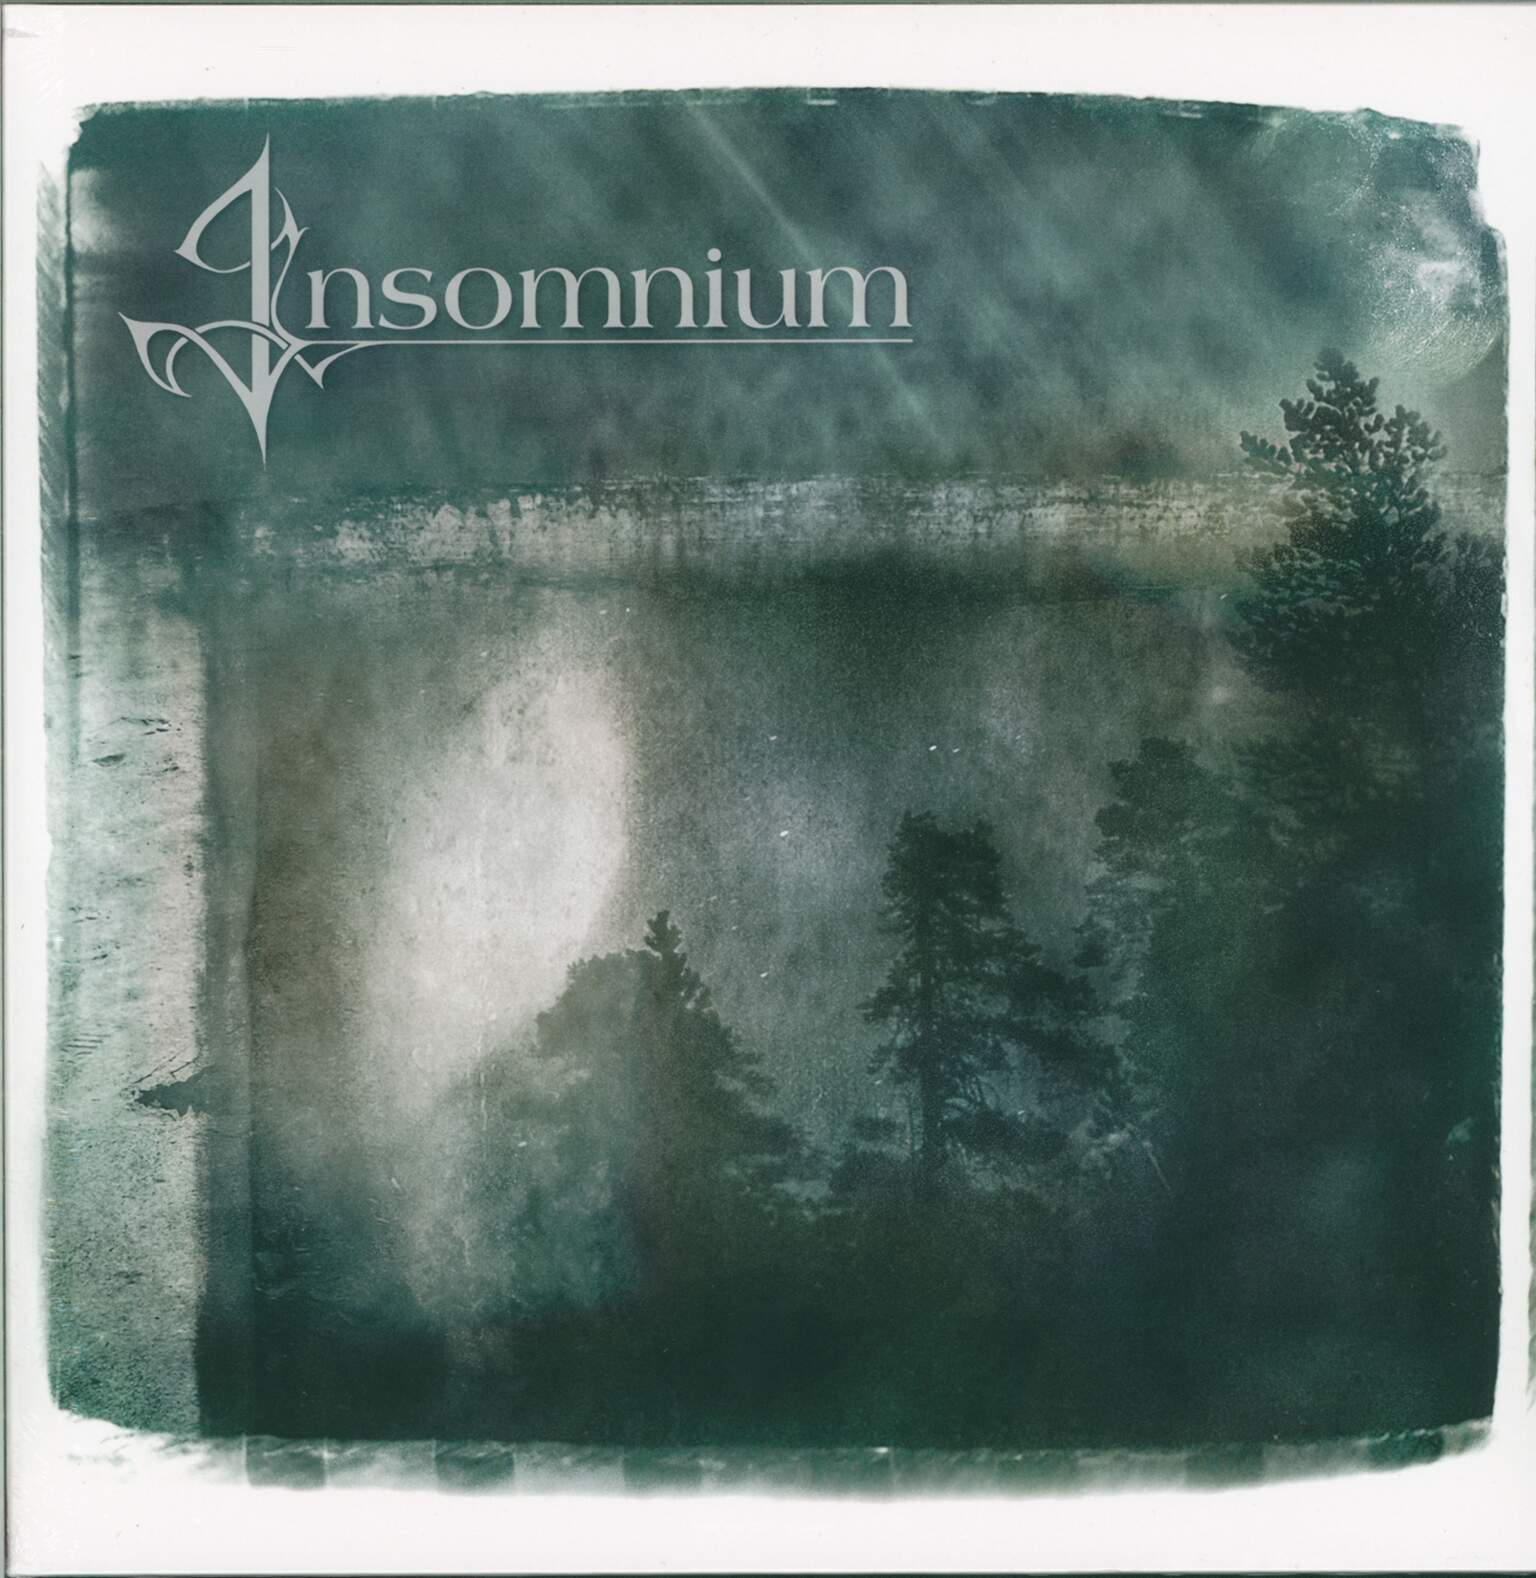 Insomnium: Since The Day It All Came Down, 2×LP (Vinyl)